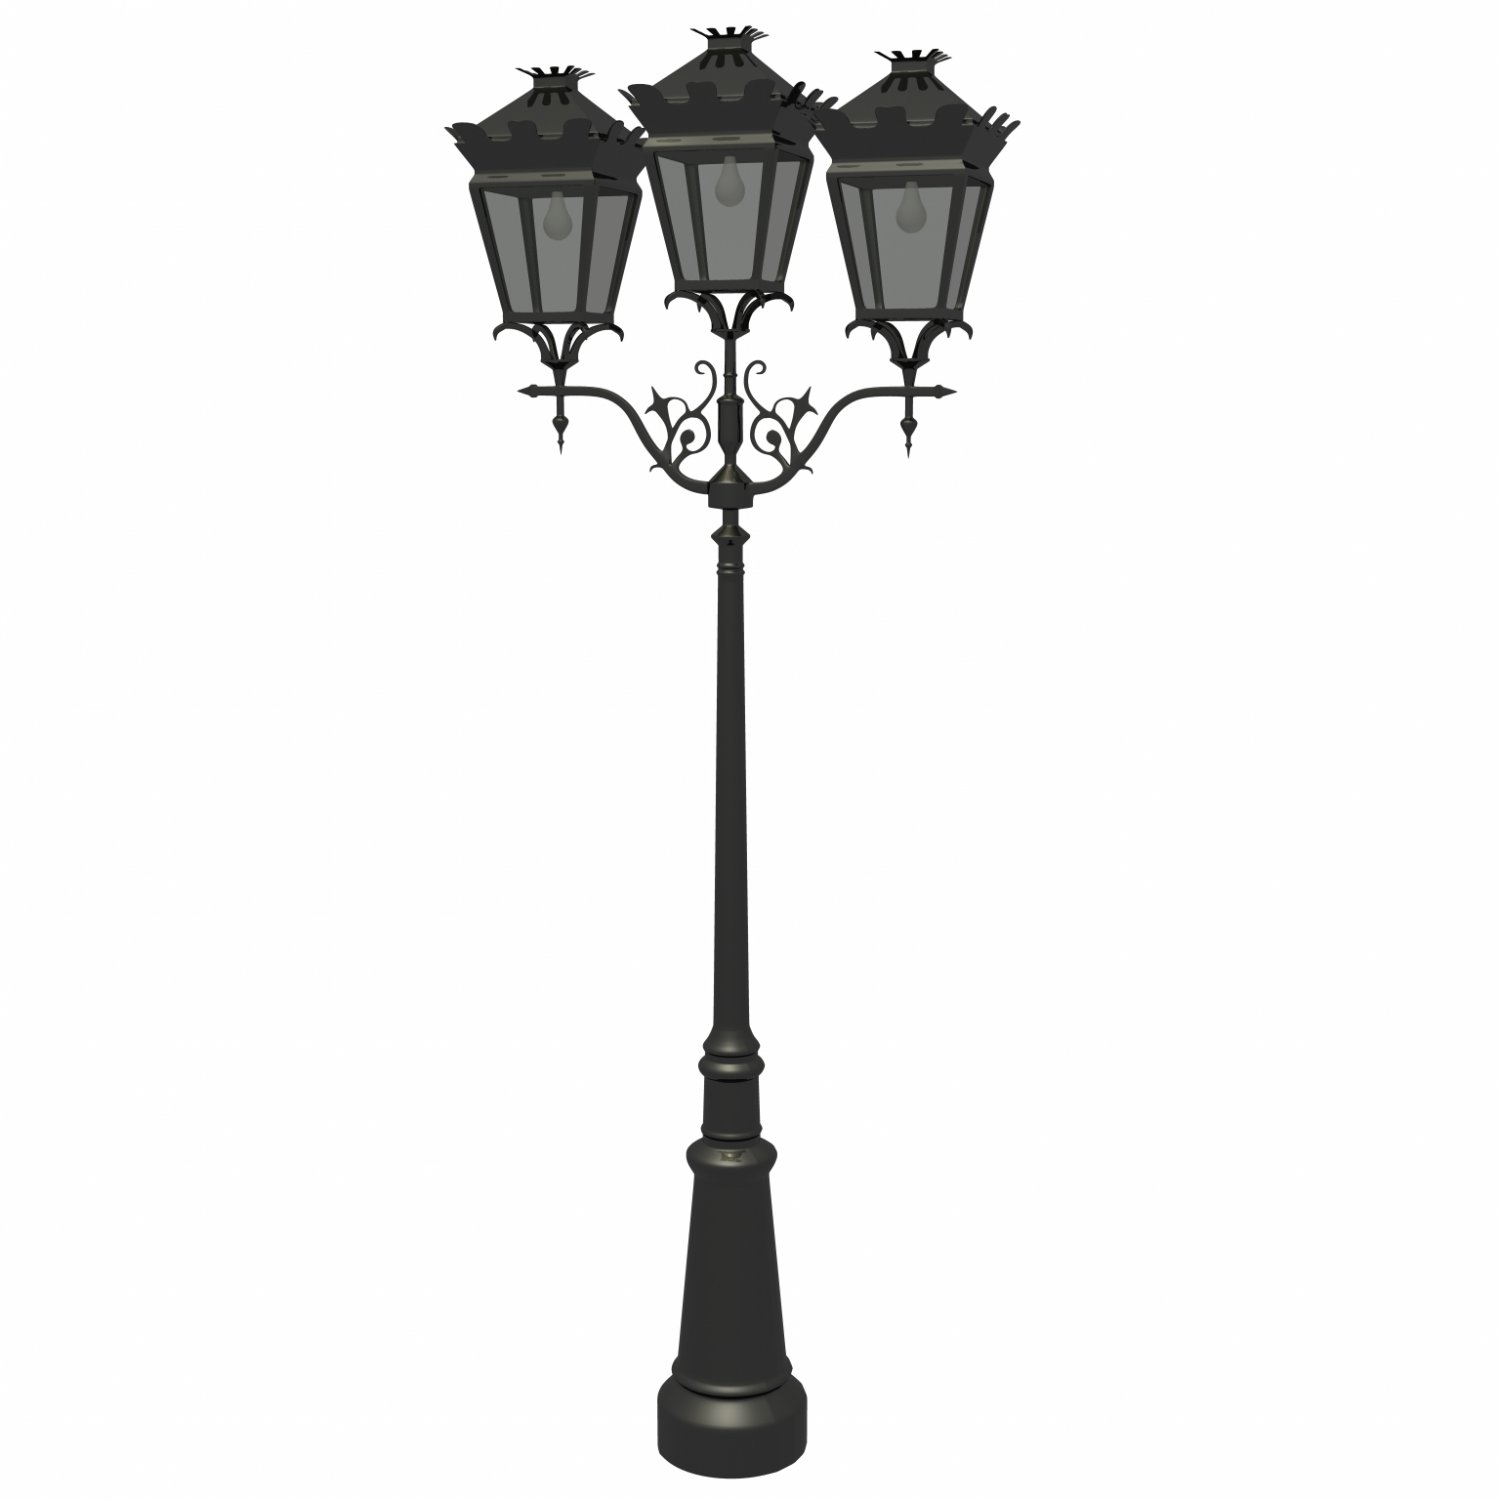 Street lamp Free 3D Model in Other 3DExport